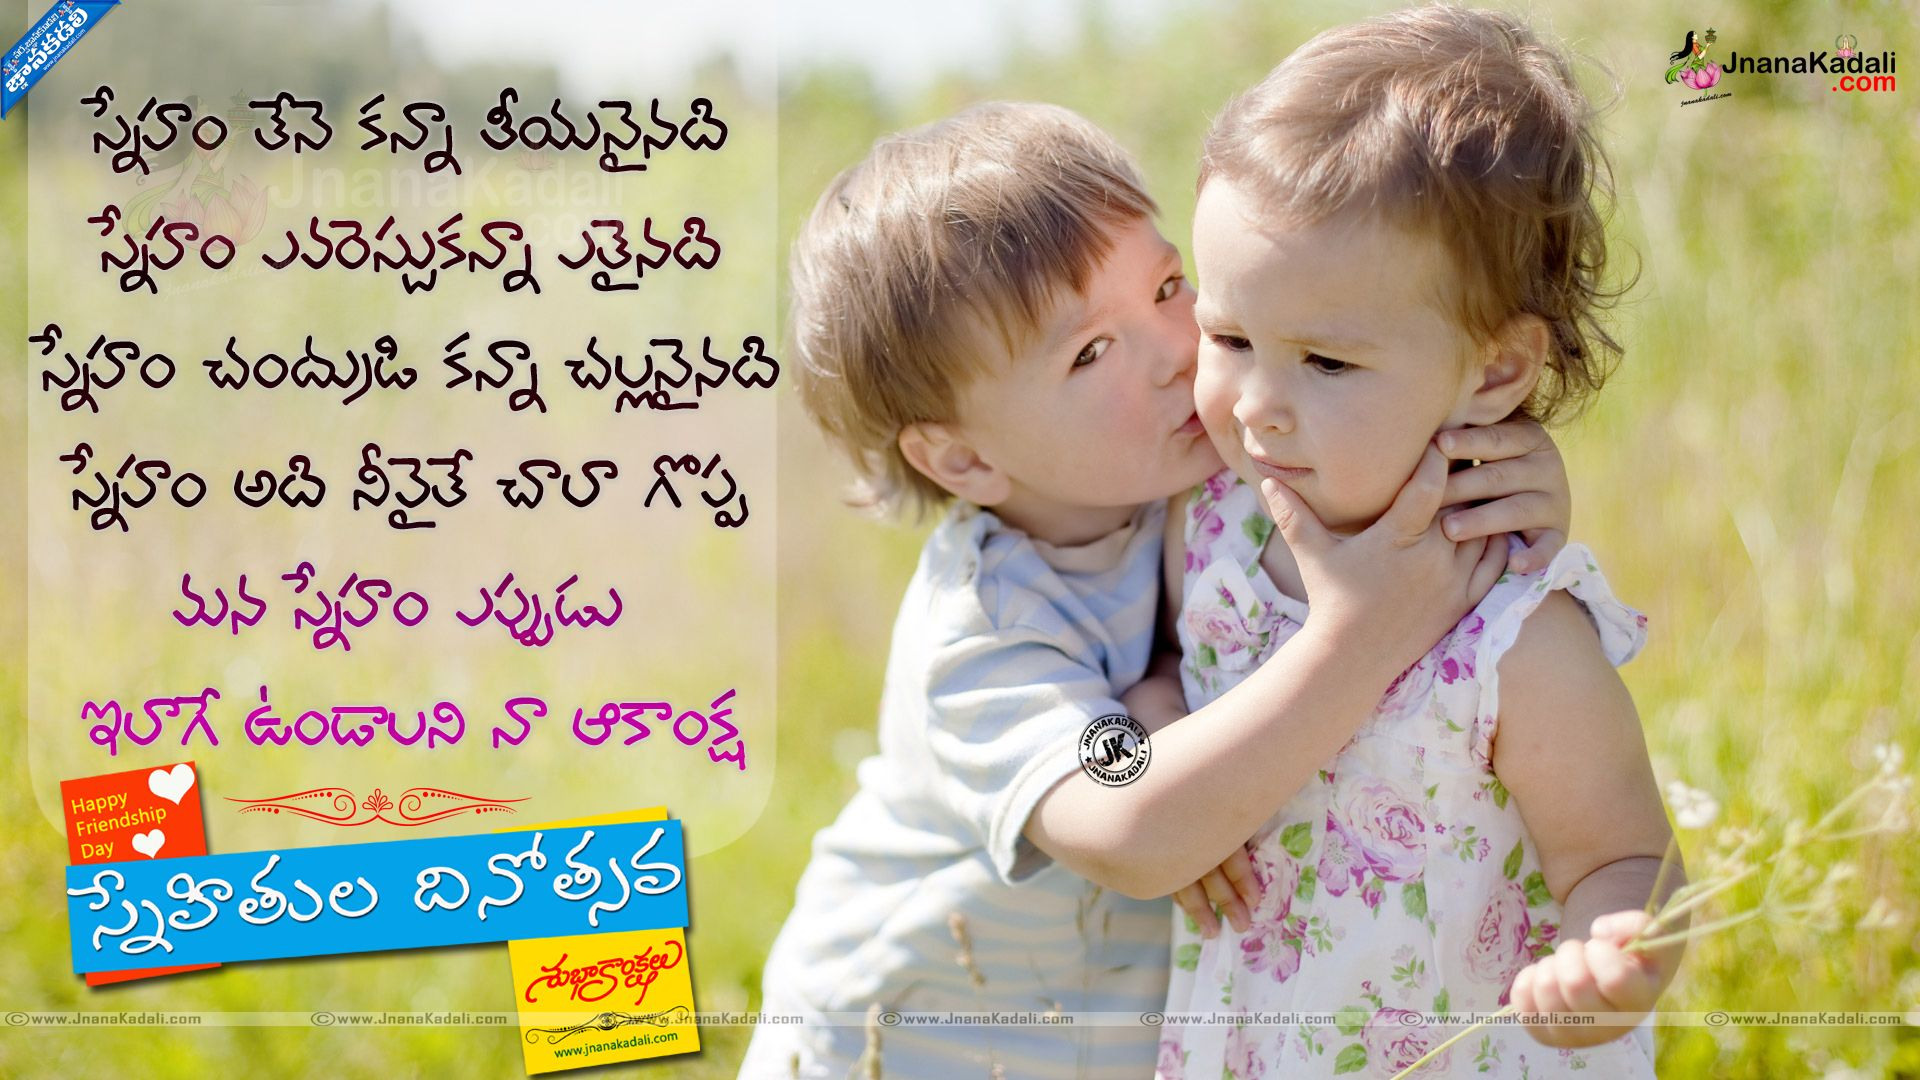 Friendship Day Telugu Quotes Wishes Greetings Images Wallpapers